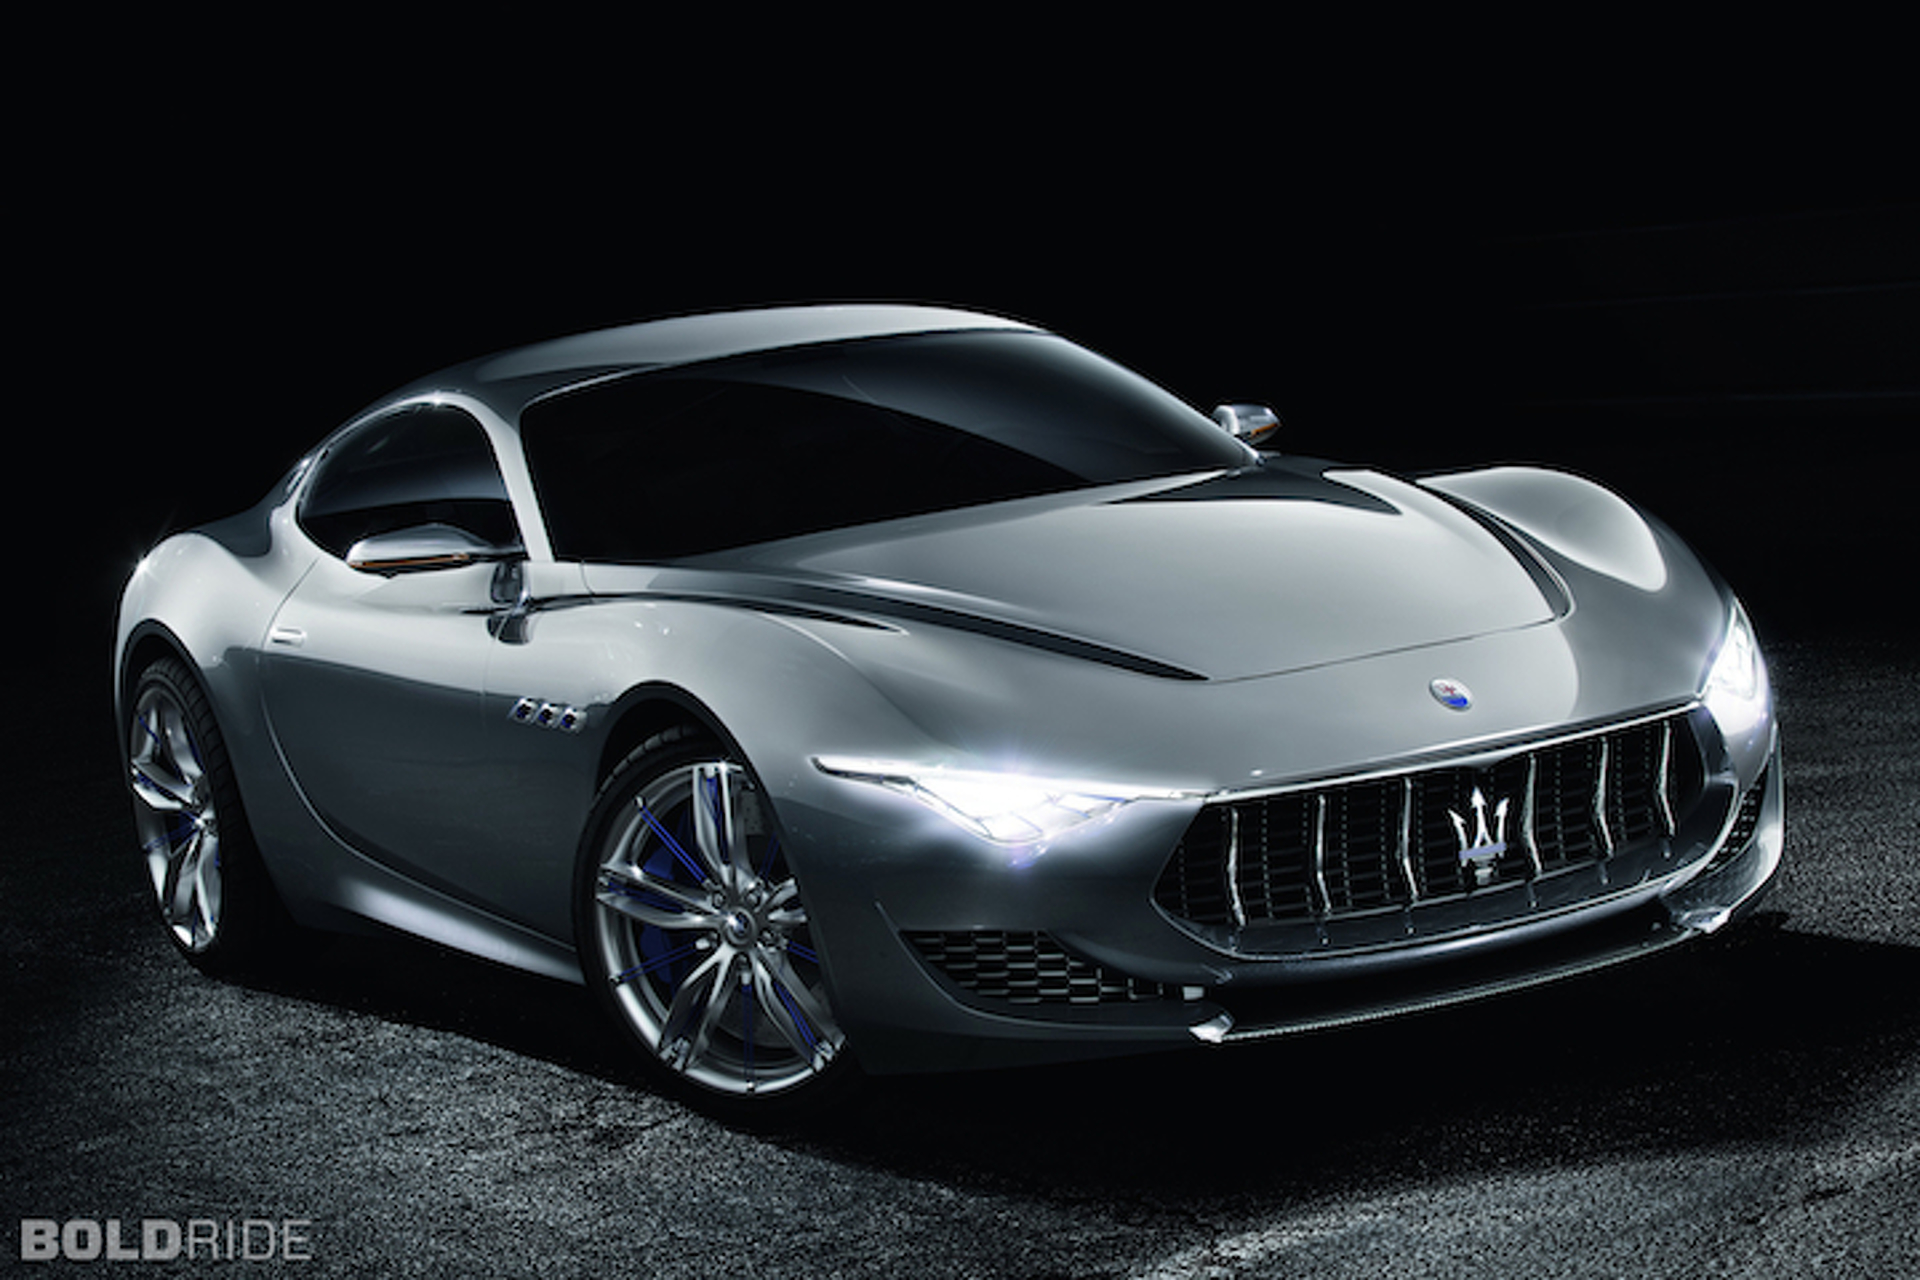 Marchionne Aiming Maserati as Company's New Flagship